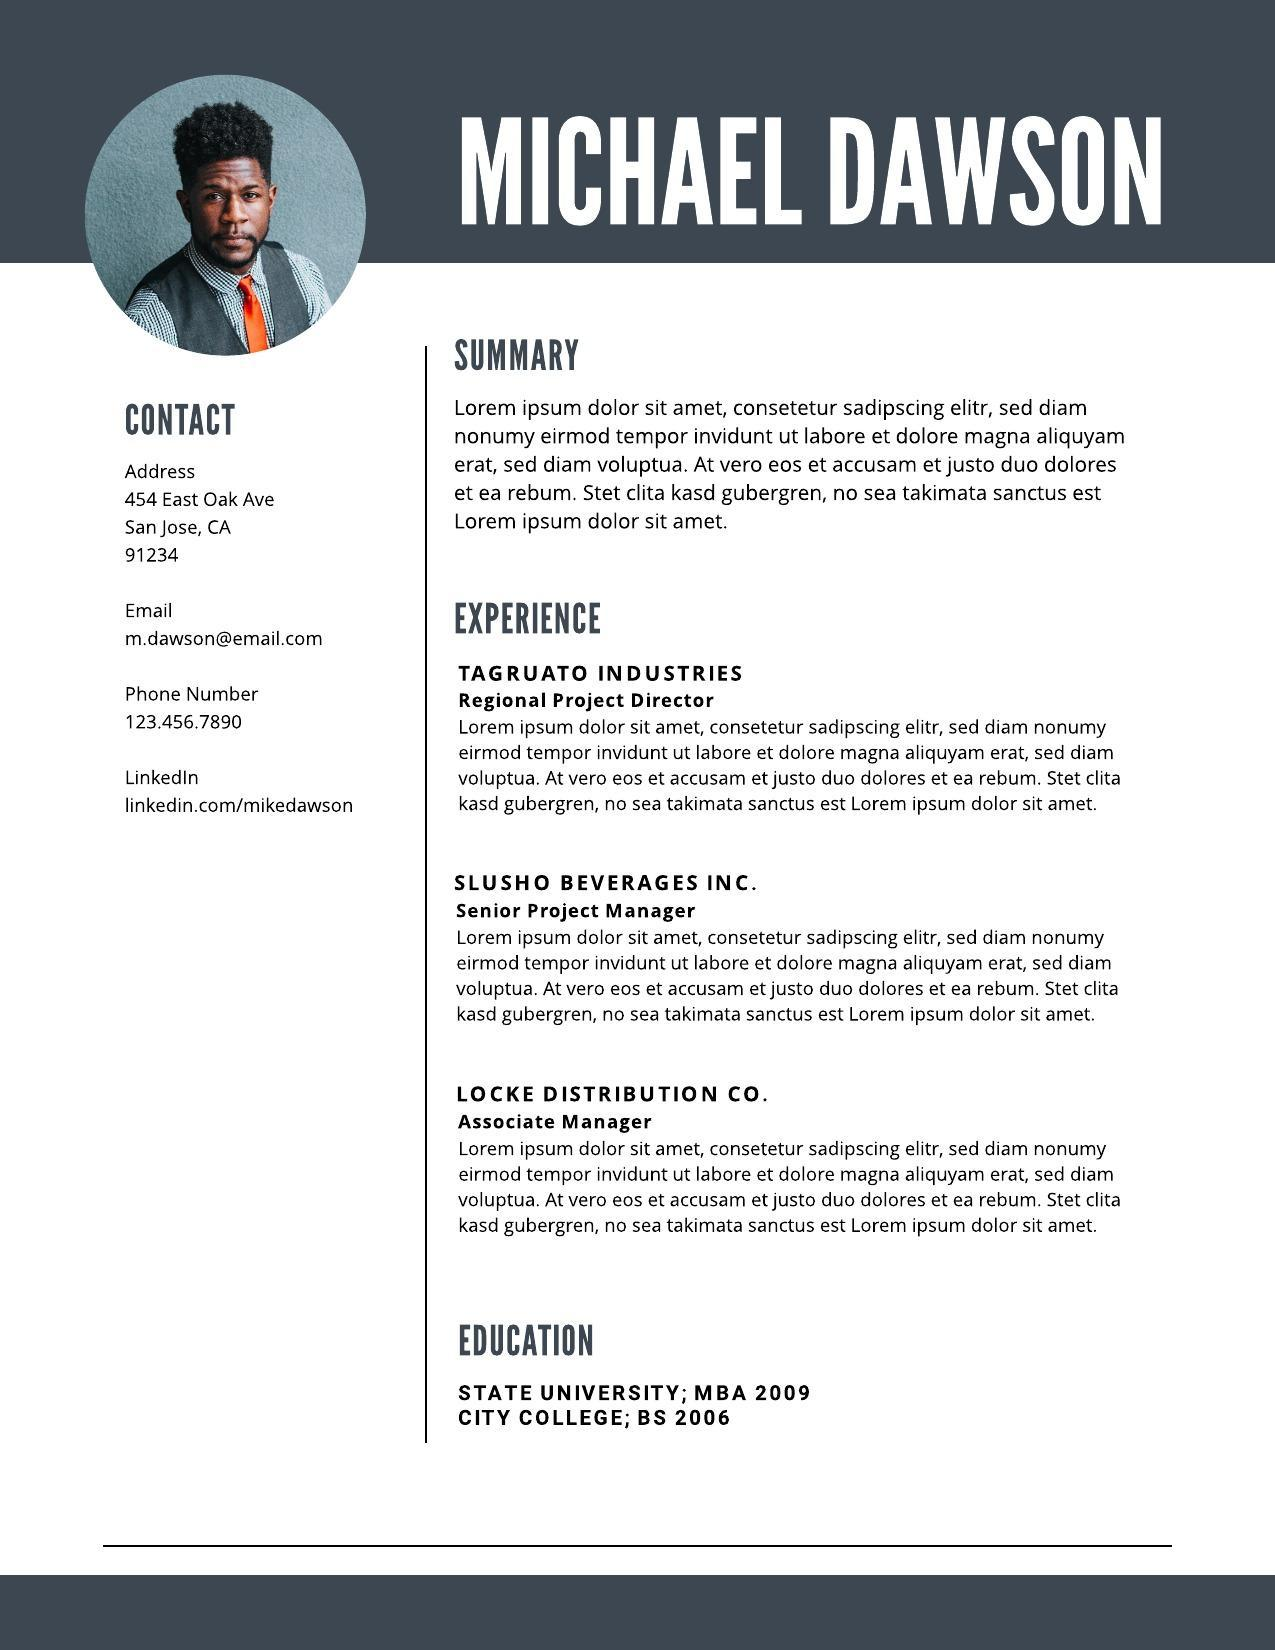 resume examples writing tips for lucidpress and samples image04 hackathon example people Resume Resume Writing Tips And Samples